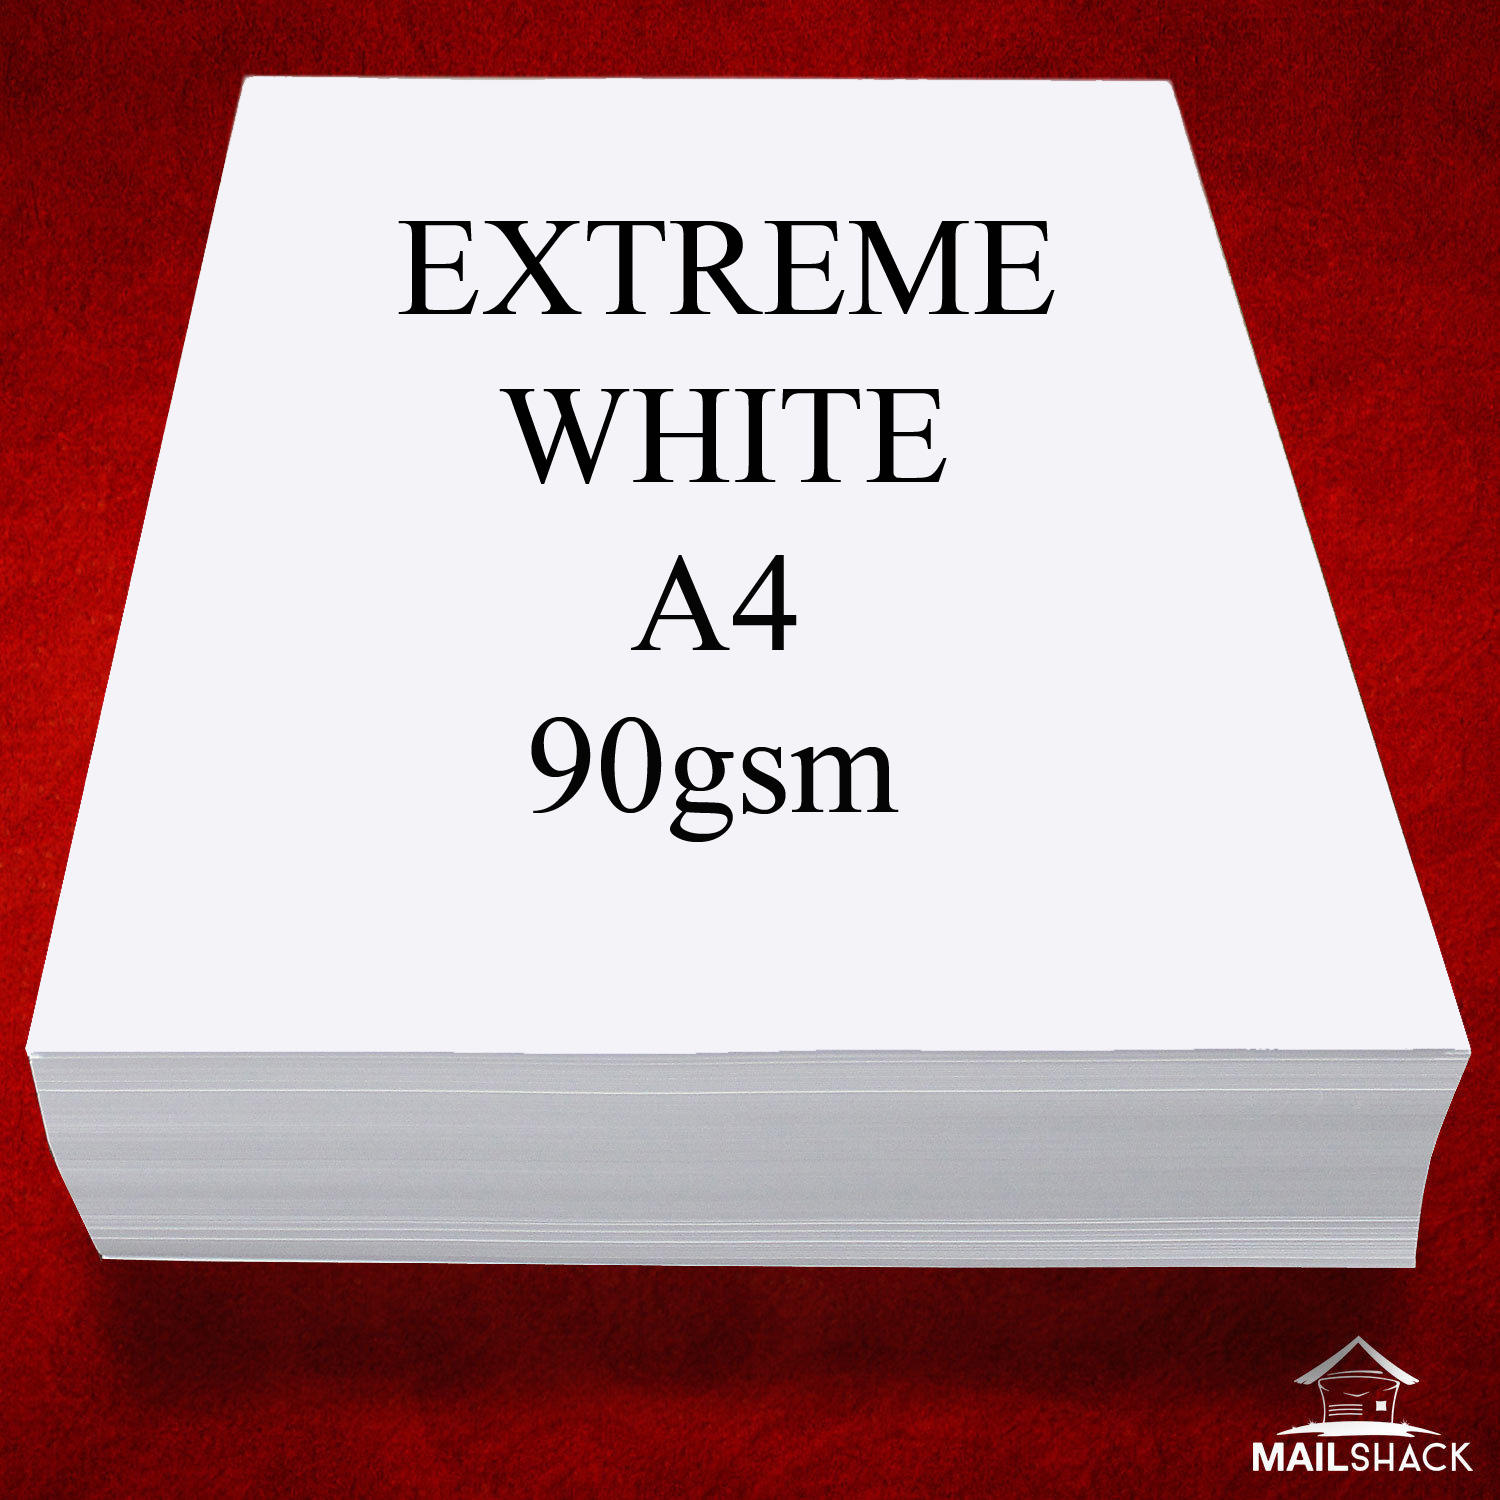 100 Sheets EXTREME WHITE A4 90gsm SMOOTH Paper Advocate High Quality Copy Print